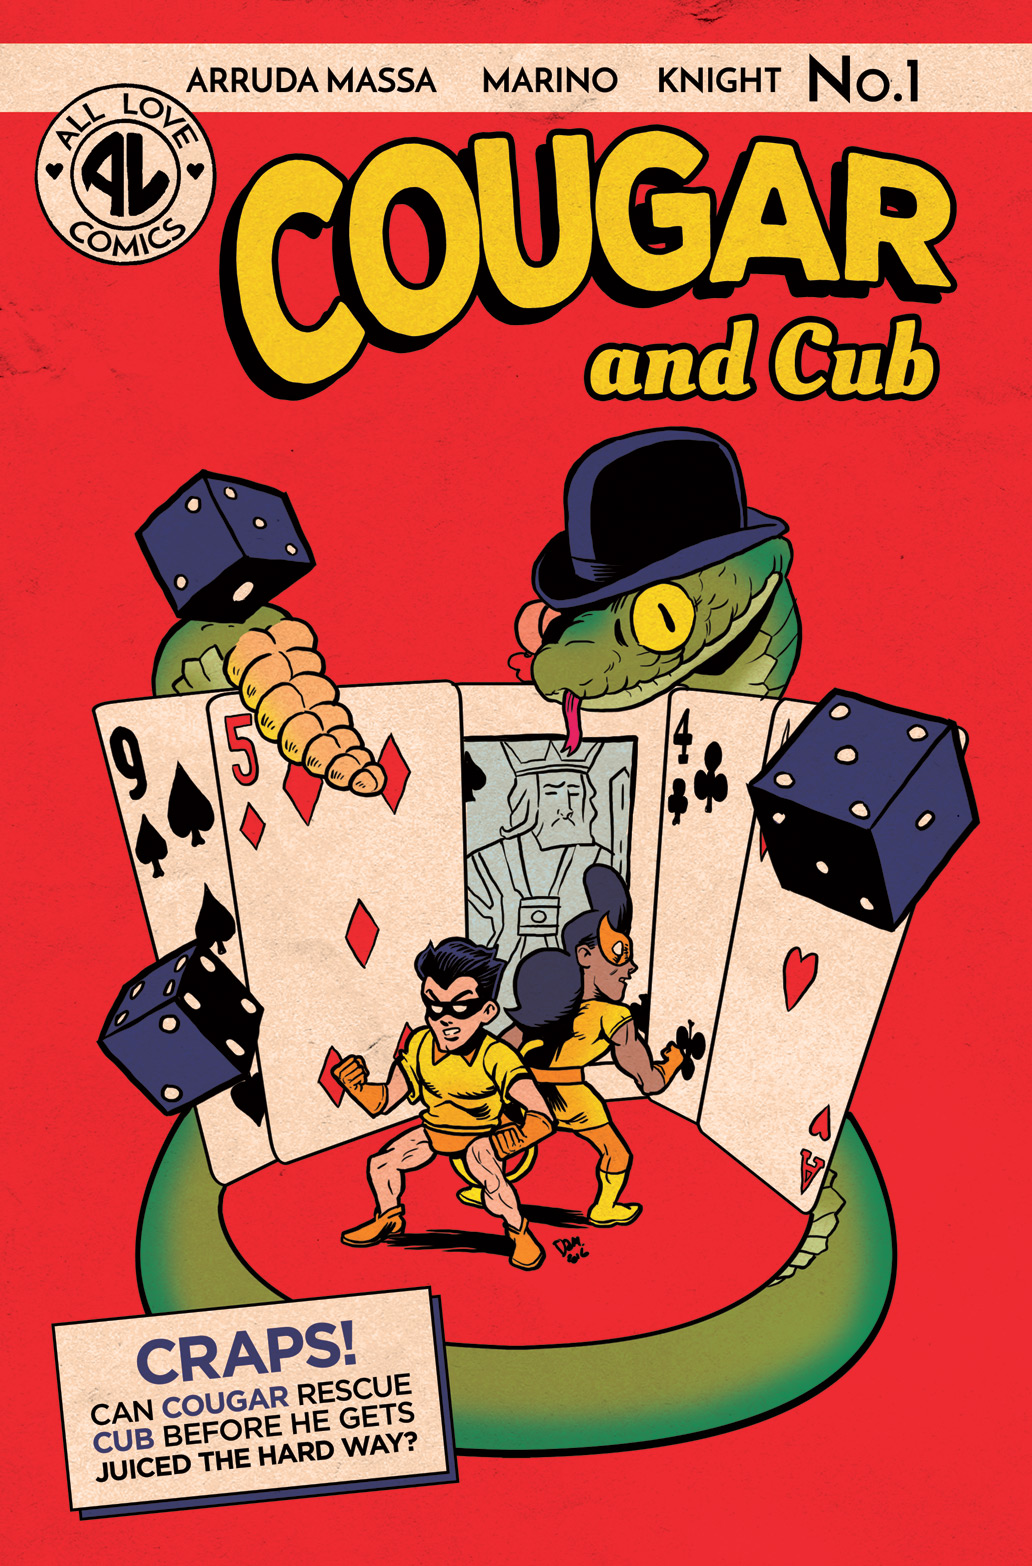 Cougar and Cub #1 flashback cover